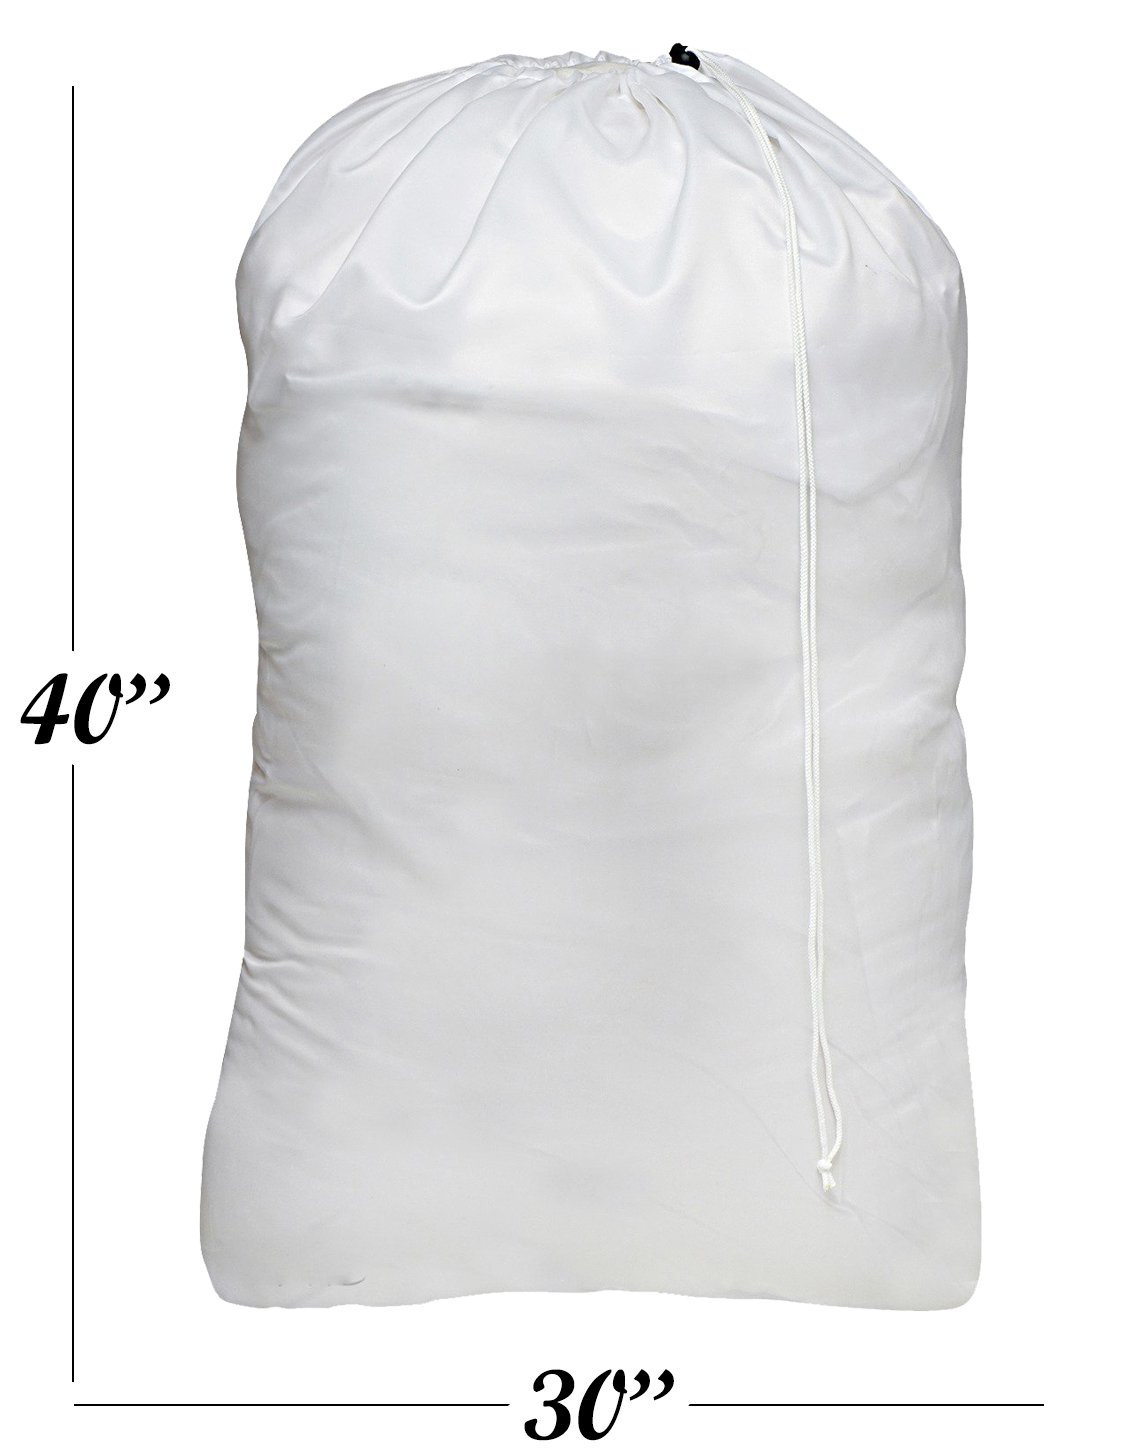 7996e40727be6 Nylon Laundry Bag - Locking Drawstring Closure and Machine Washable. These  Large Bags Will Fit a Laundry Basket or Hamper and Strong Enough to Carry  up to ...